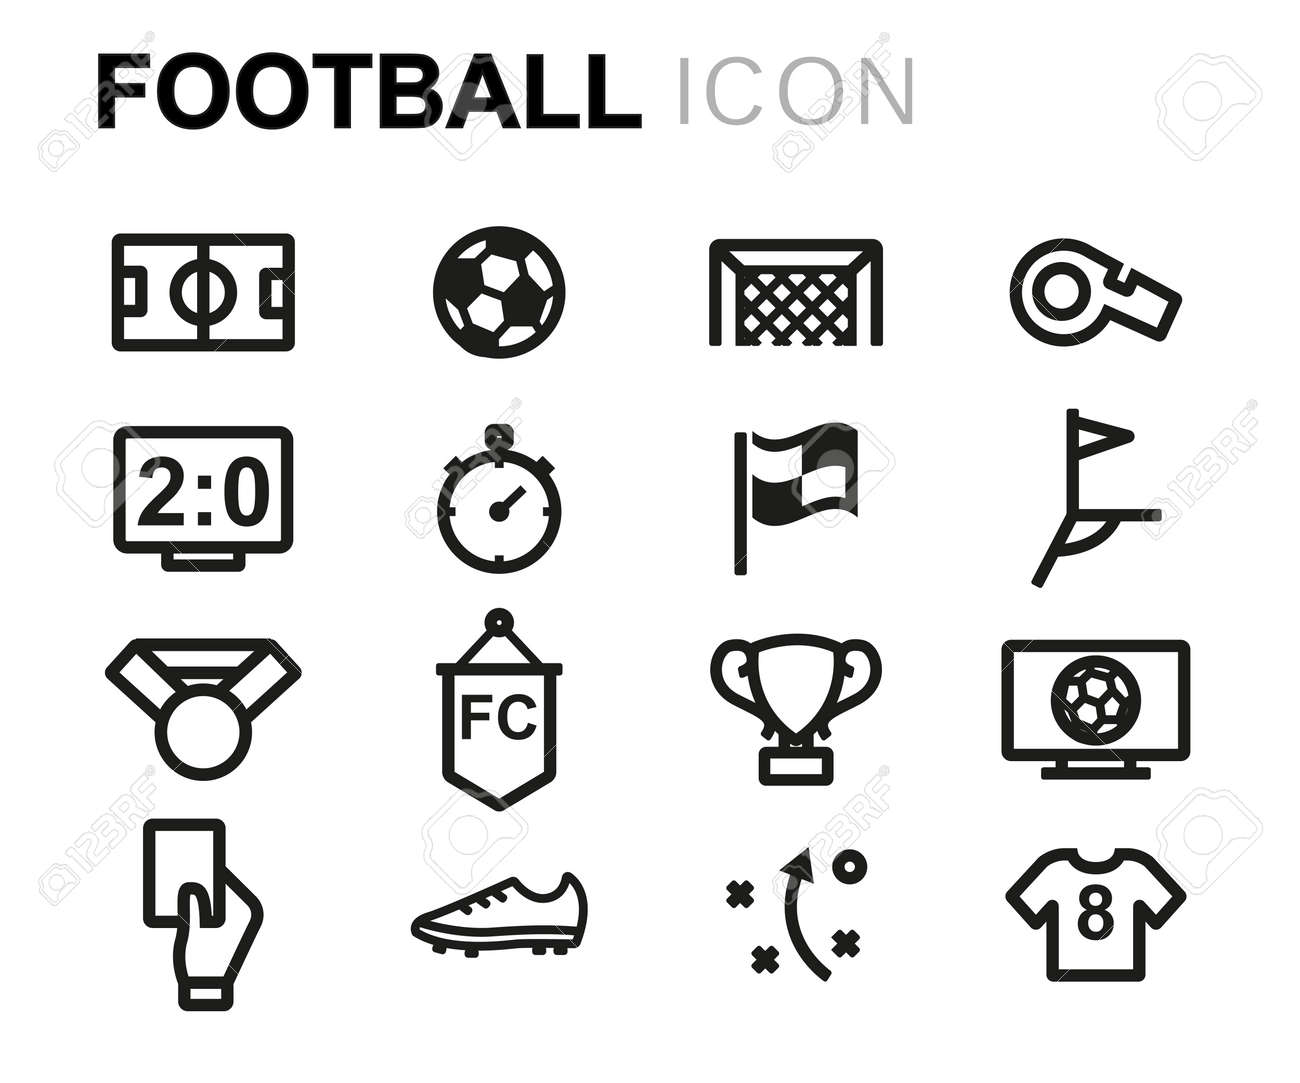 Vector line football icons set on white background - 67762747